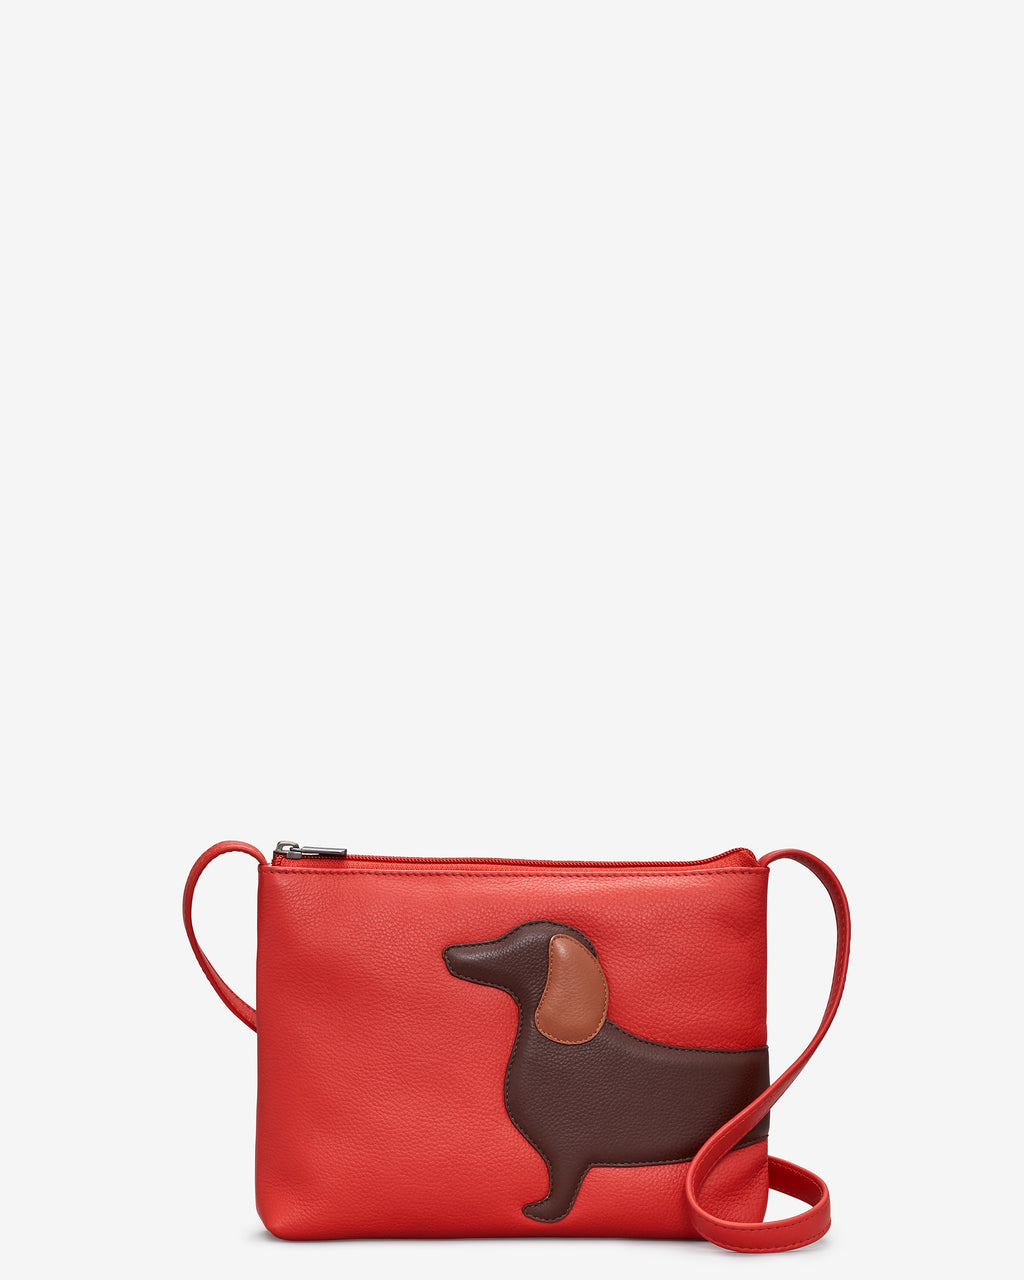 Dottie the Dachshund Leather Cross Body Bag